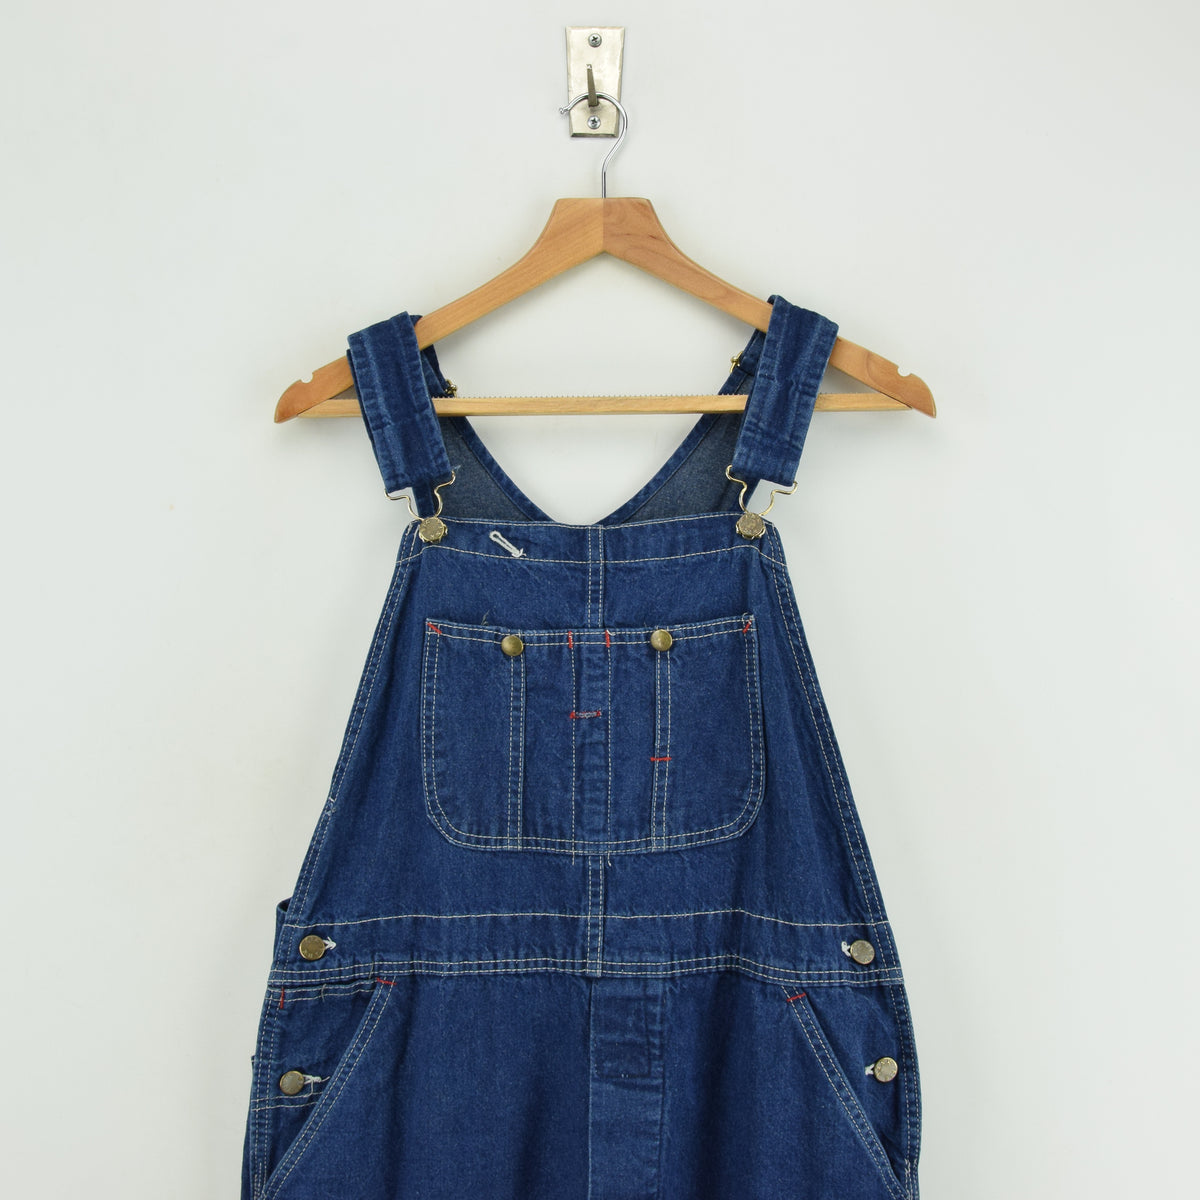 Vintage Big Yank Denim Work Dungarees Blue Bib Overalls Trousers Med 32 W chest